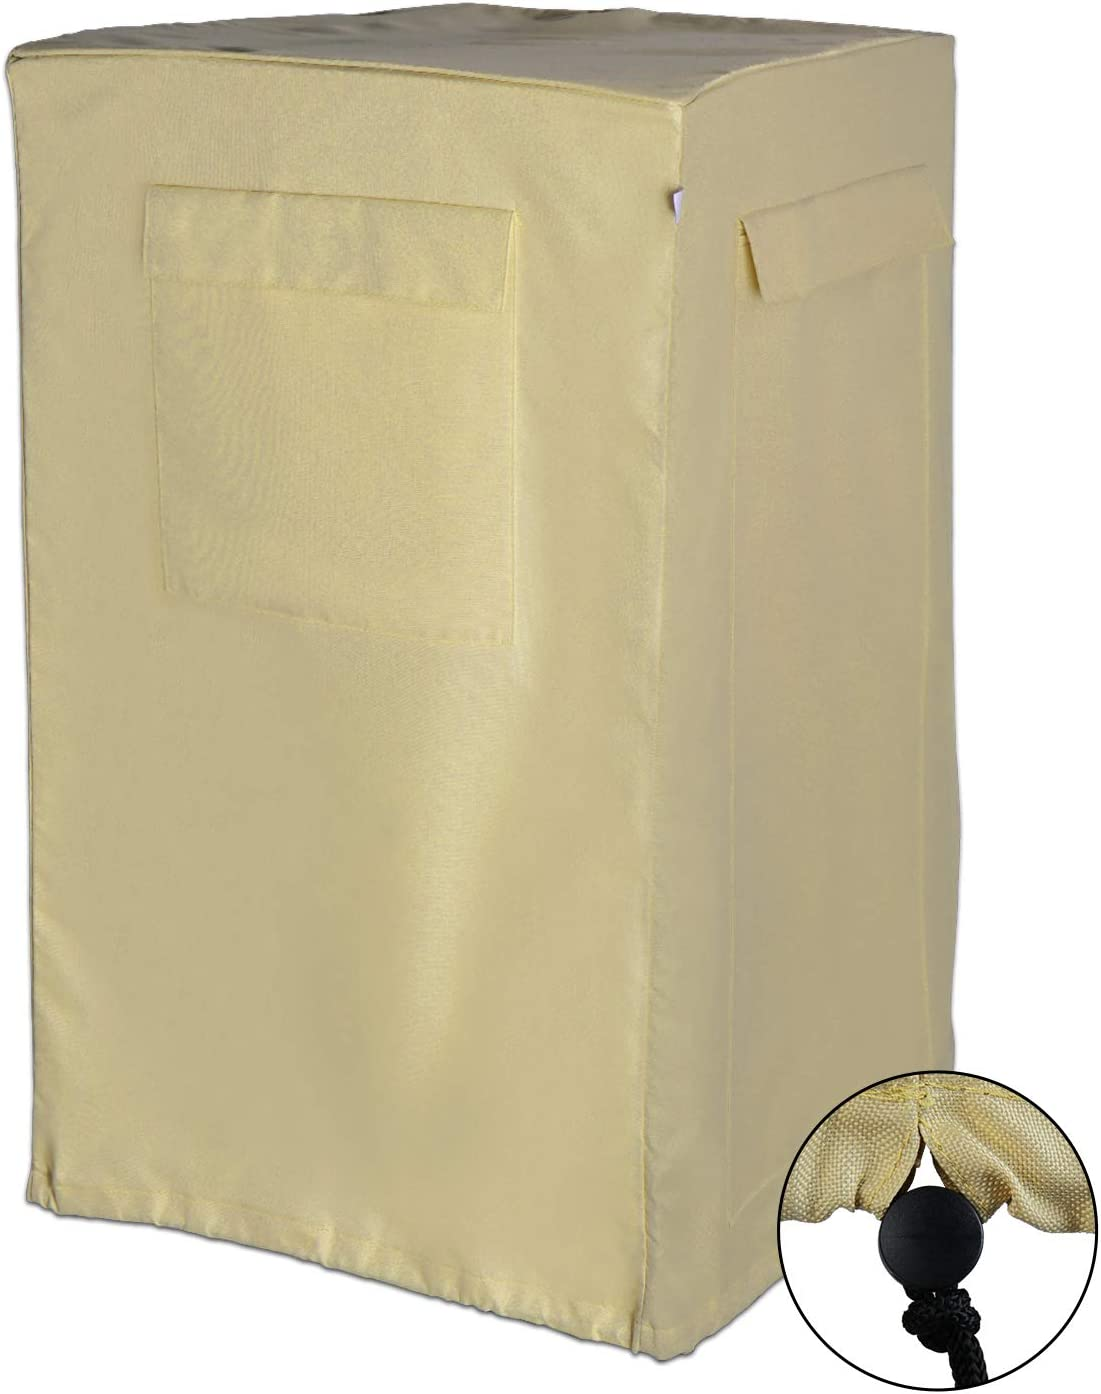 TURBRO Portable Air Conditioner Cover, Anti-Dust Storage Bags, Fits up to 21.7 x 19.7 x 35 Inches